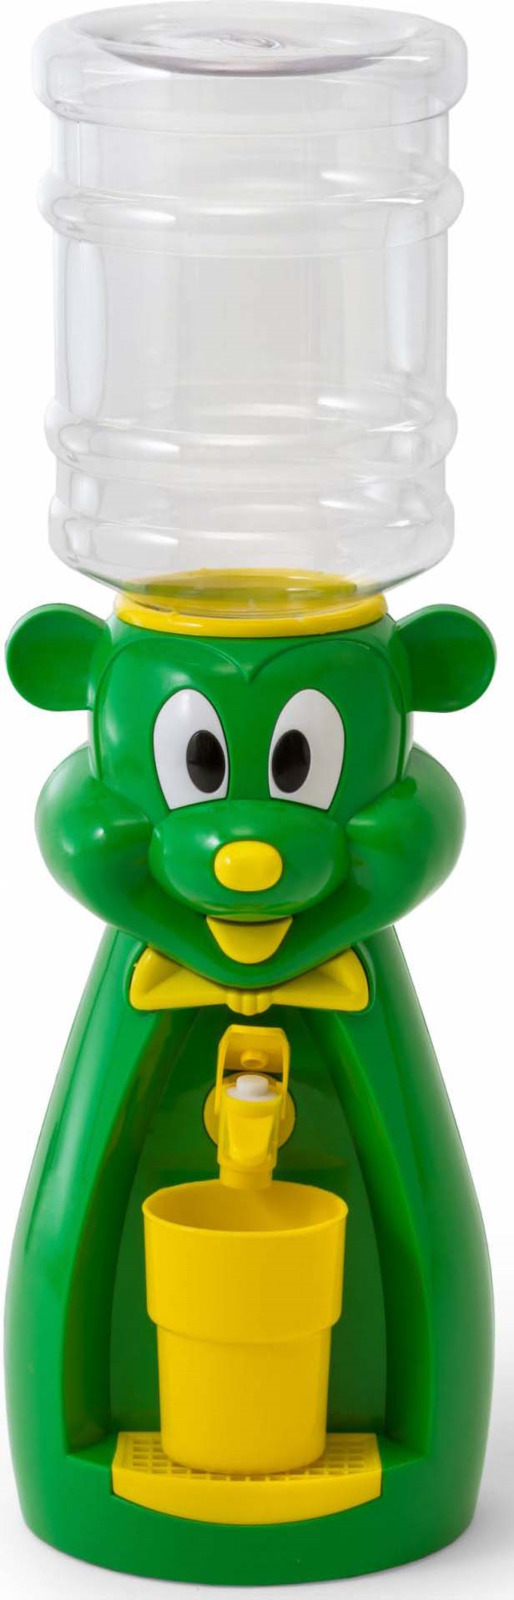 Кулер для воды Vatten Kids Mouse, Green, White Vatten